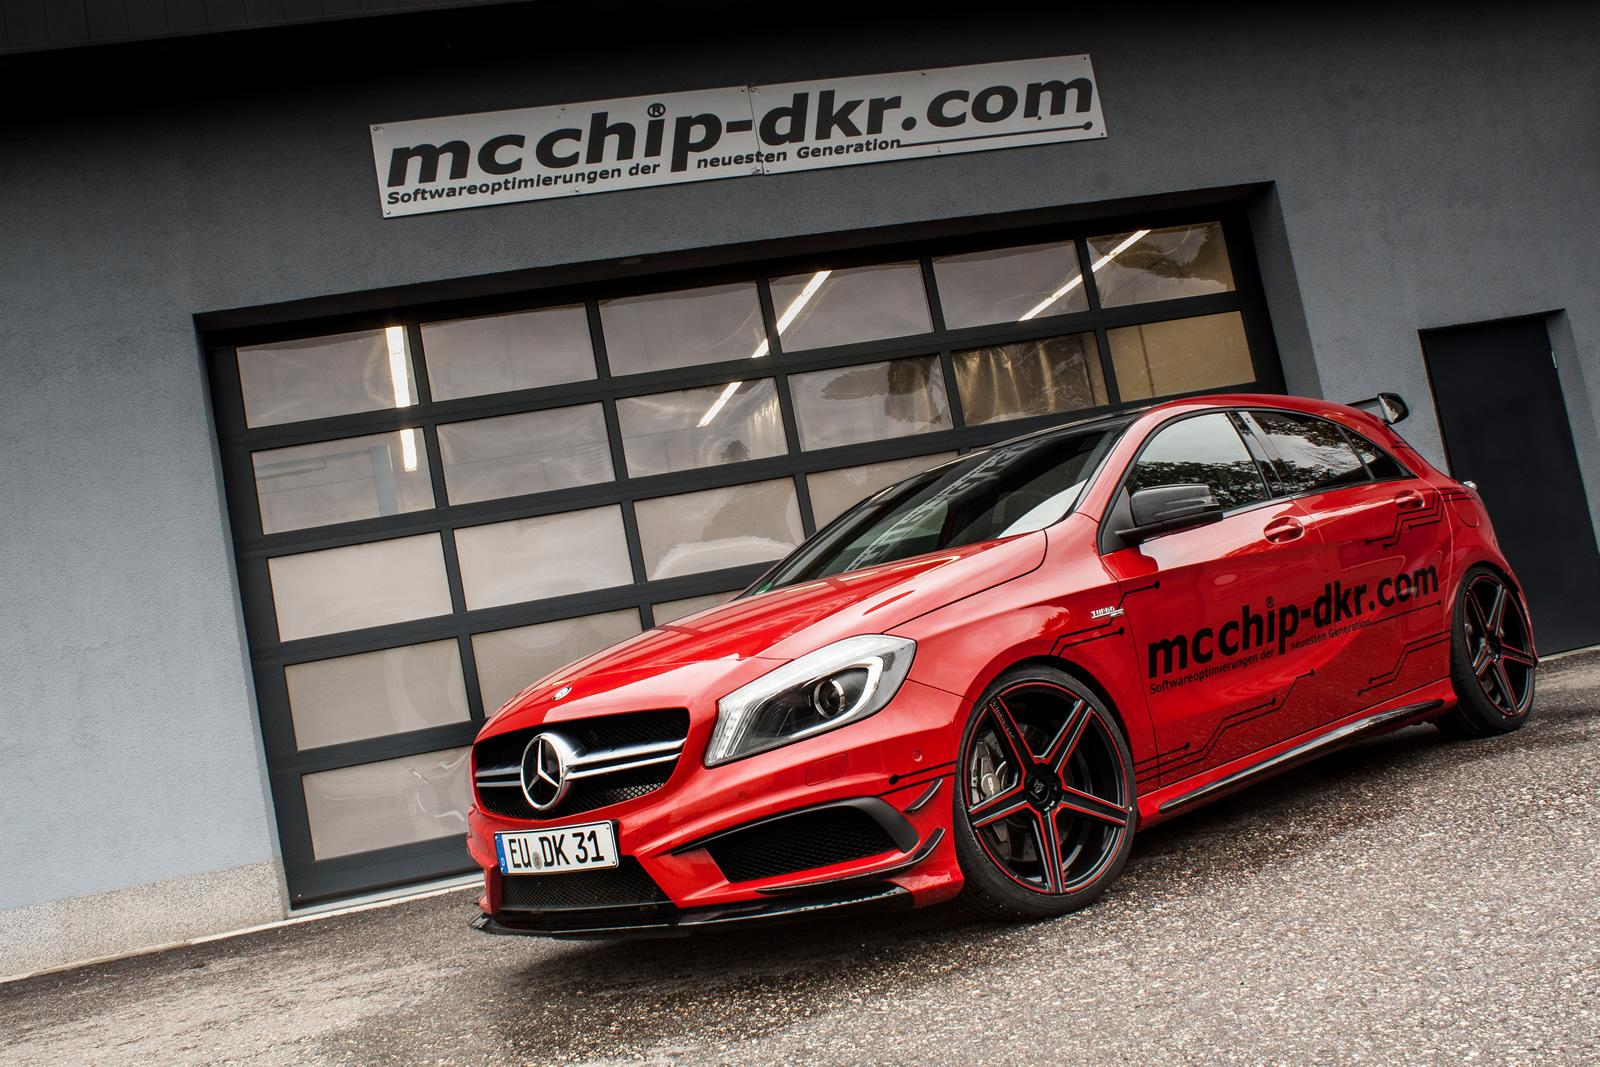 mercedes benz a45 amg tuned by mcchip dkr. Black Bedroom Furniture Sets. Home Design Ideas